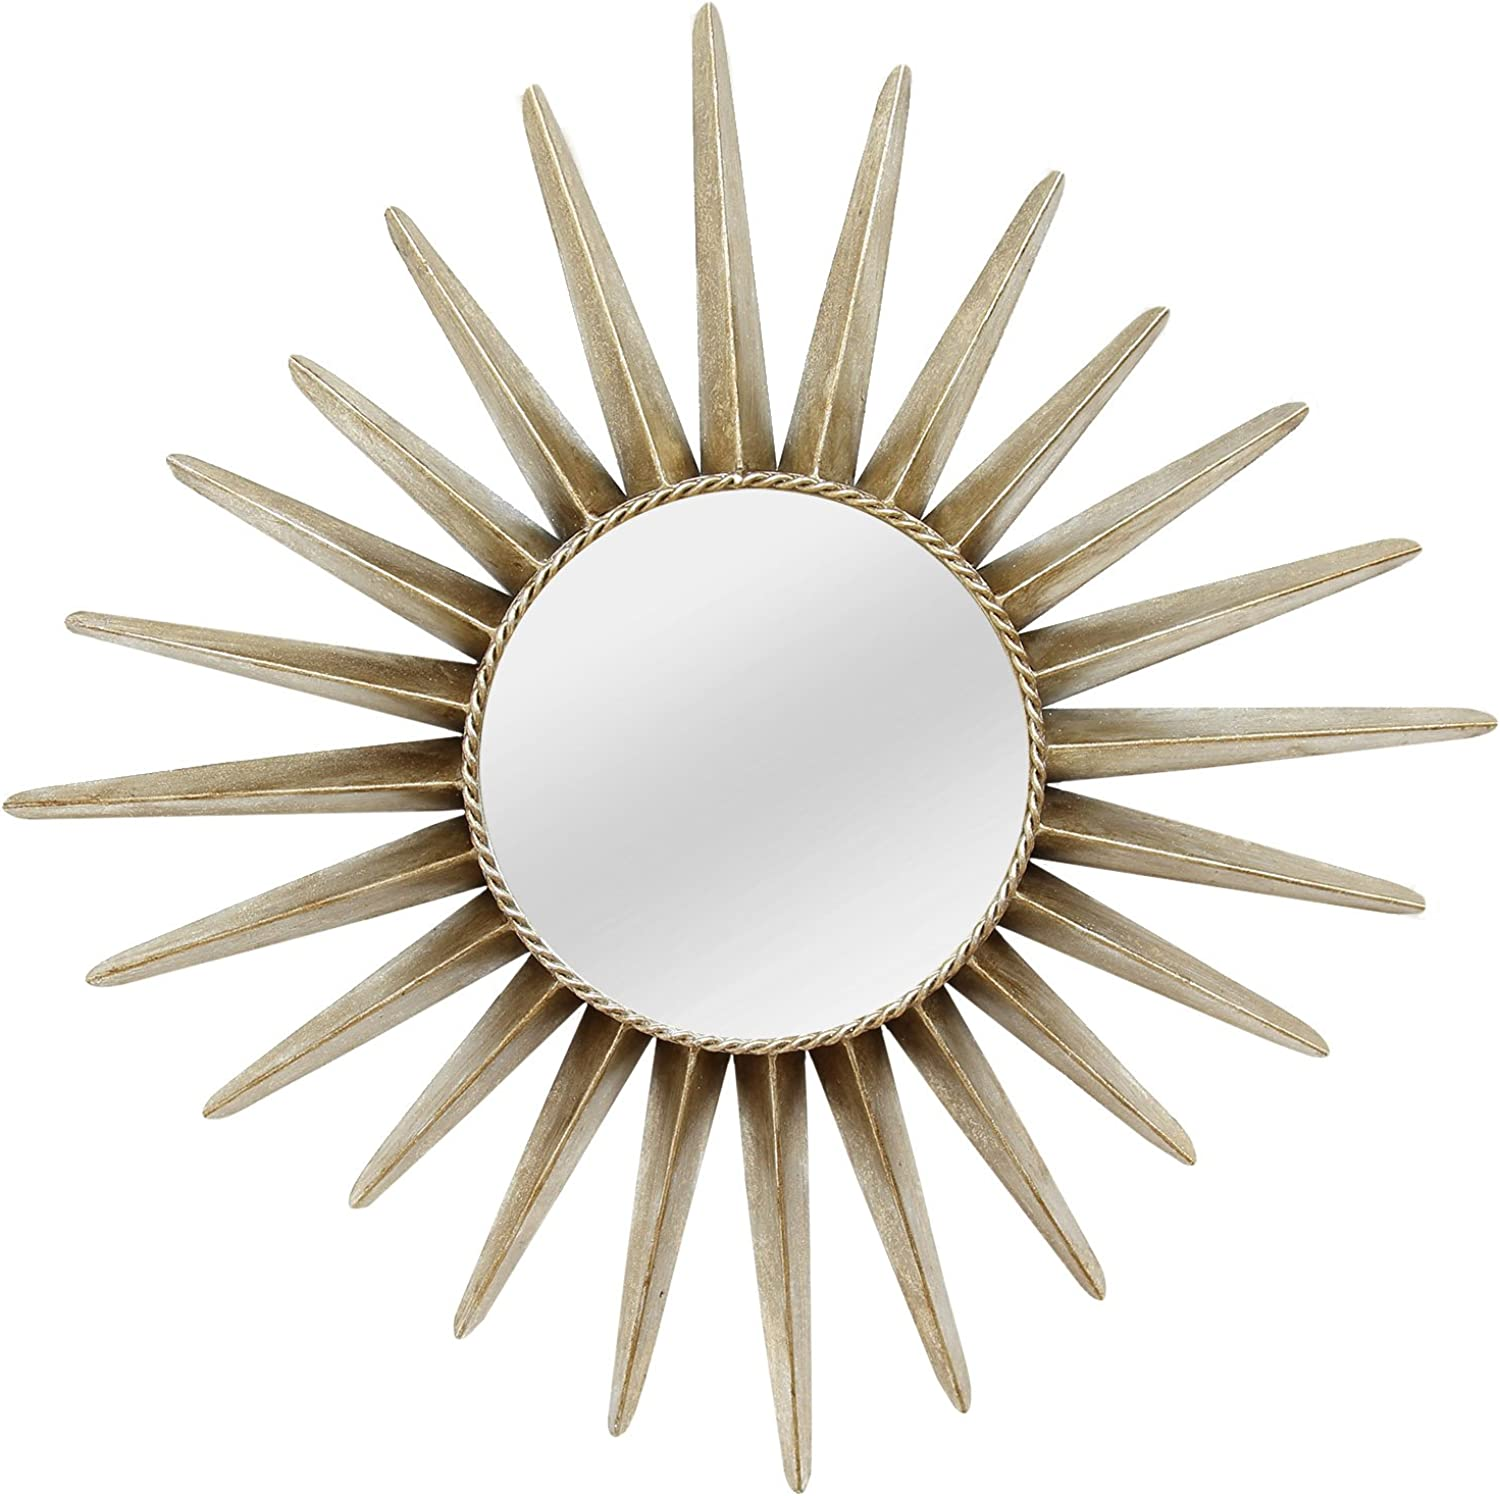 Stratton Home Décor SHD0163 Charlotte Wall Mirror